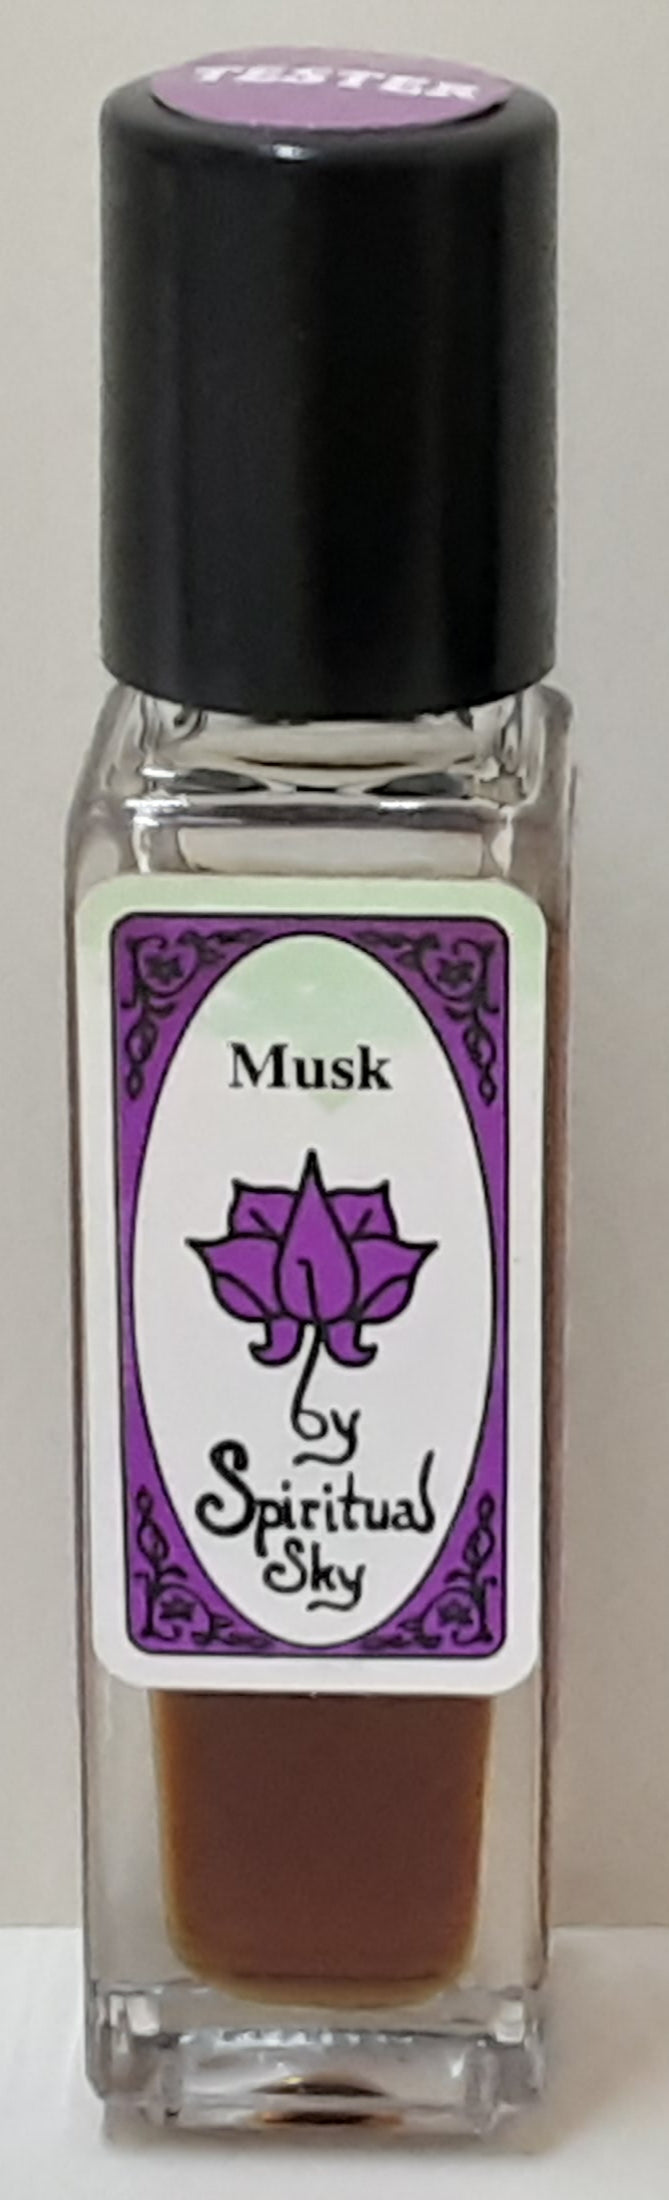 Musk Spiritual Sky  Perfumed Oil 8.5ml